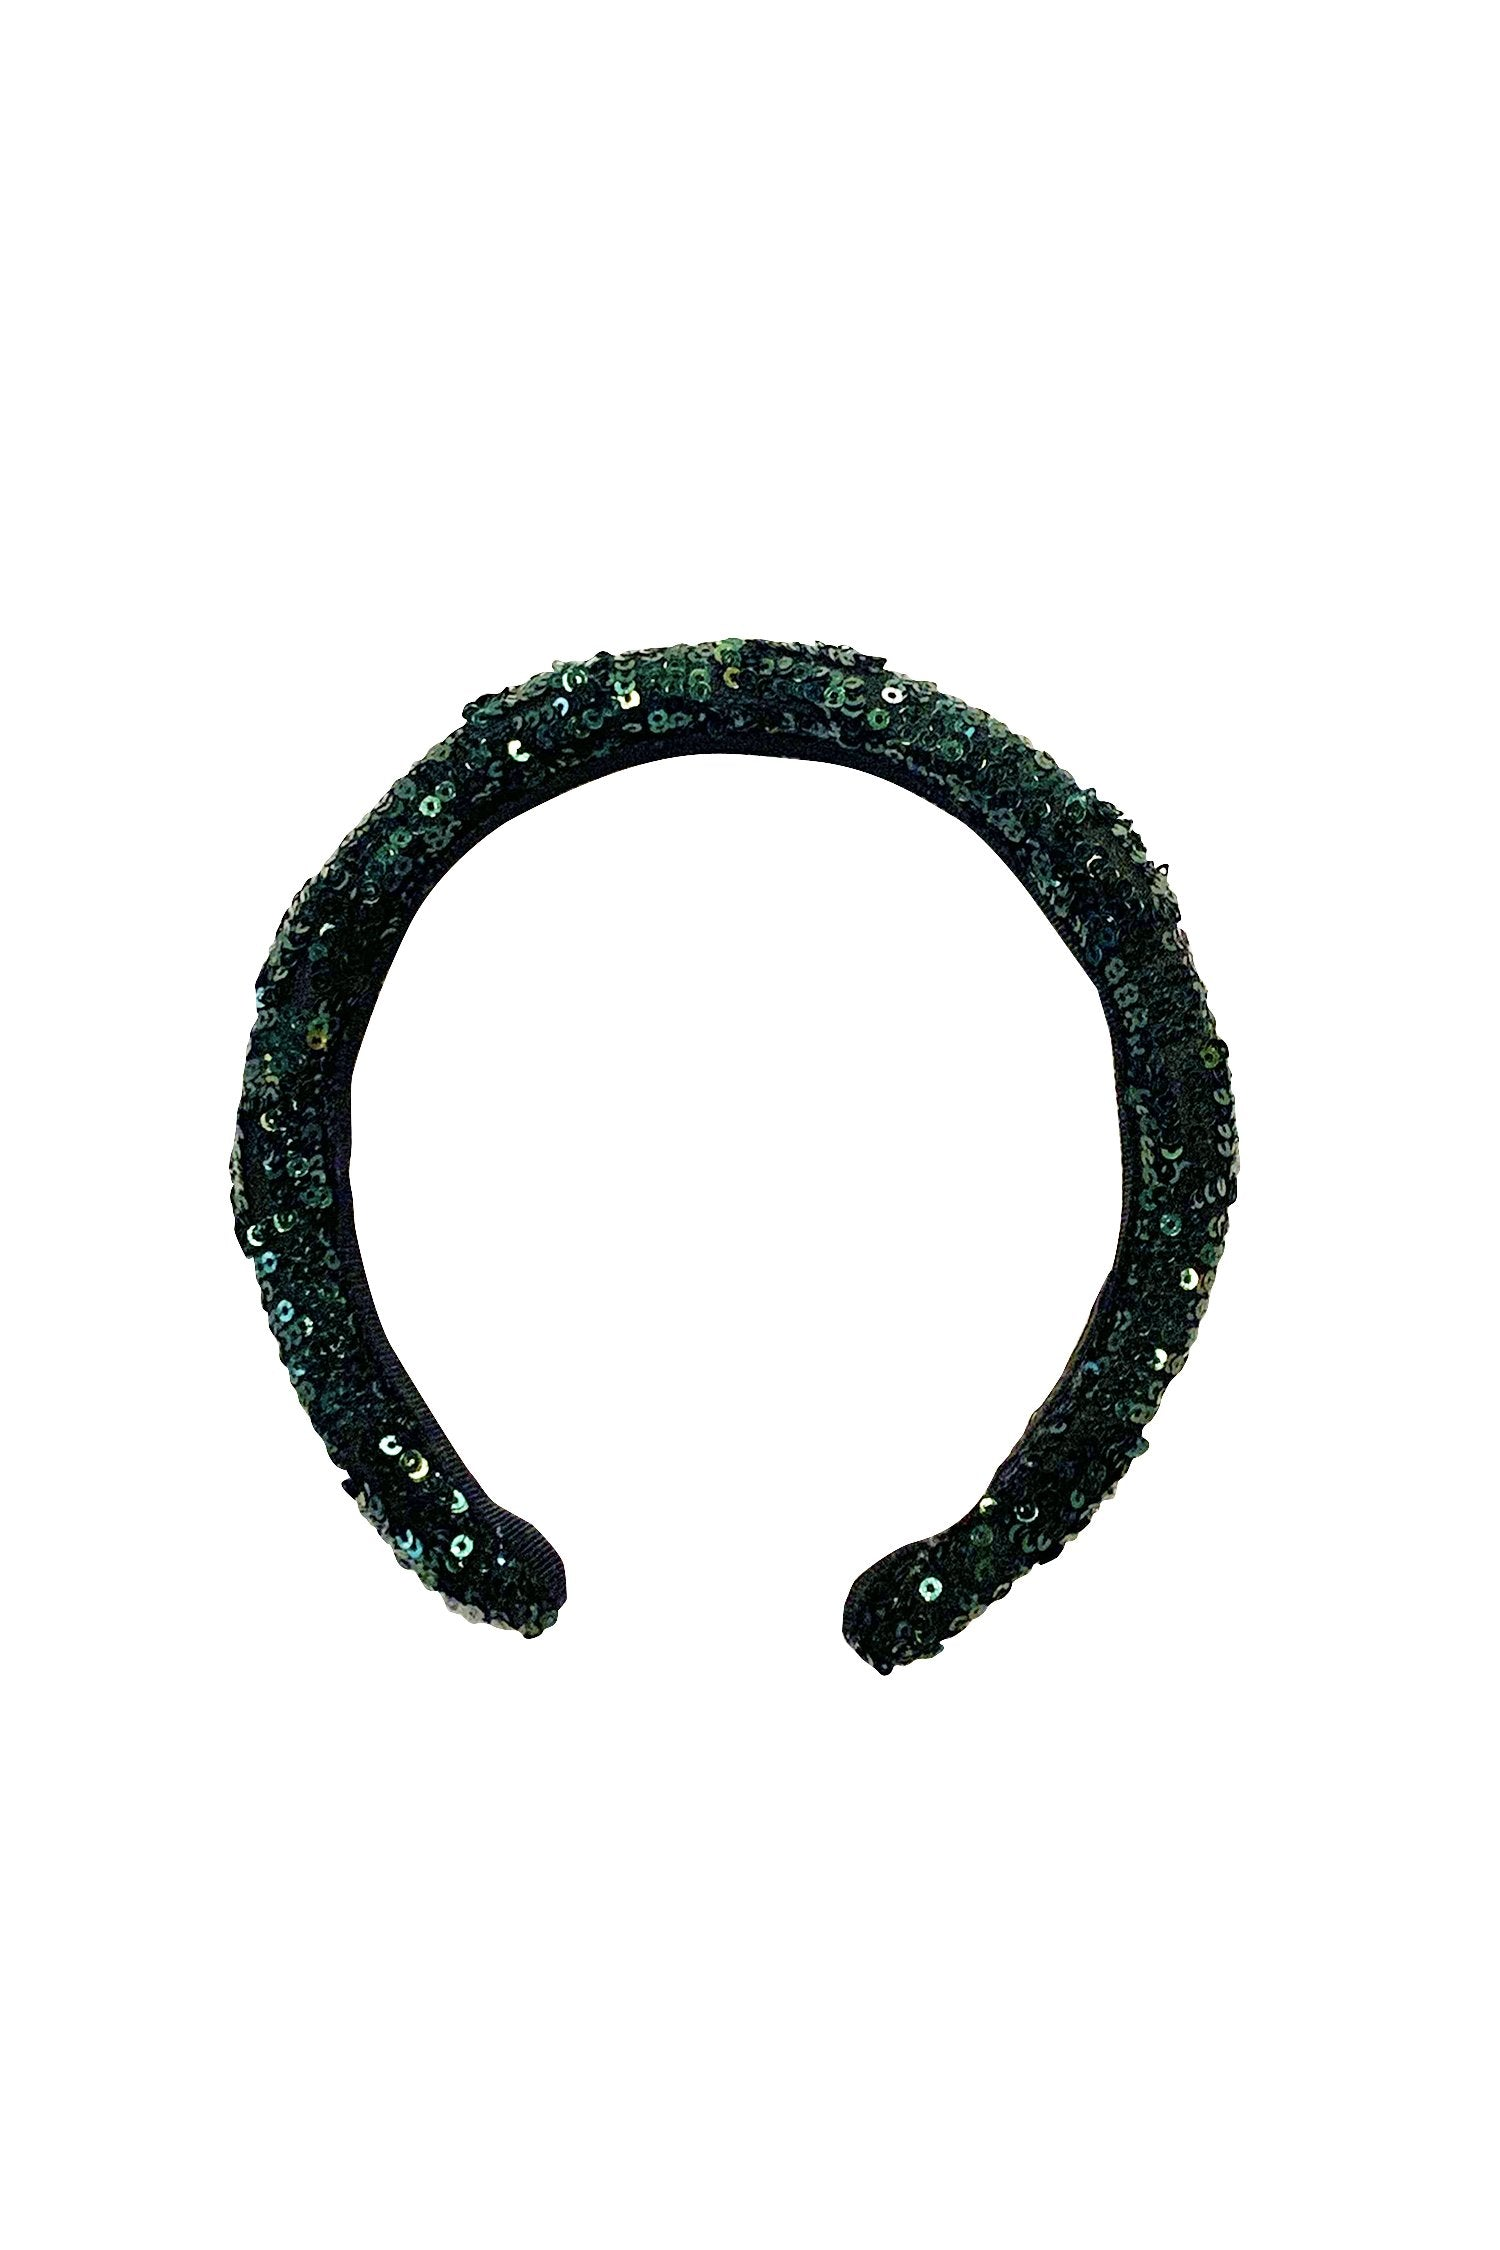 Daughters of Darkness Sequin Headband - Anna Sui